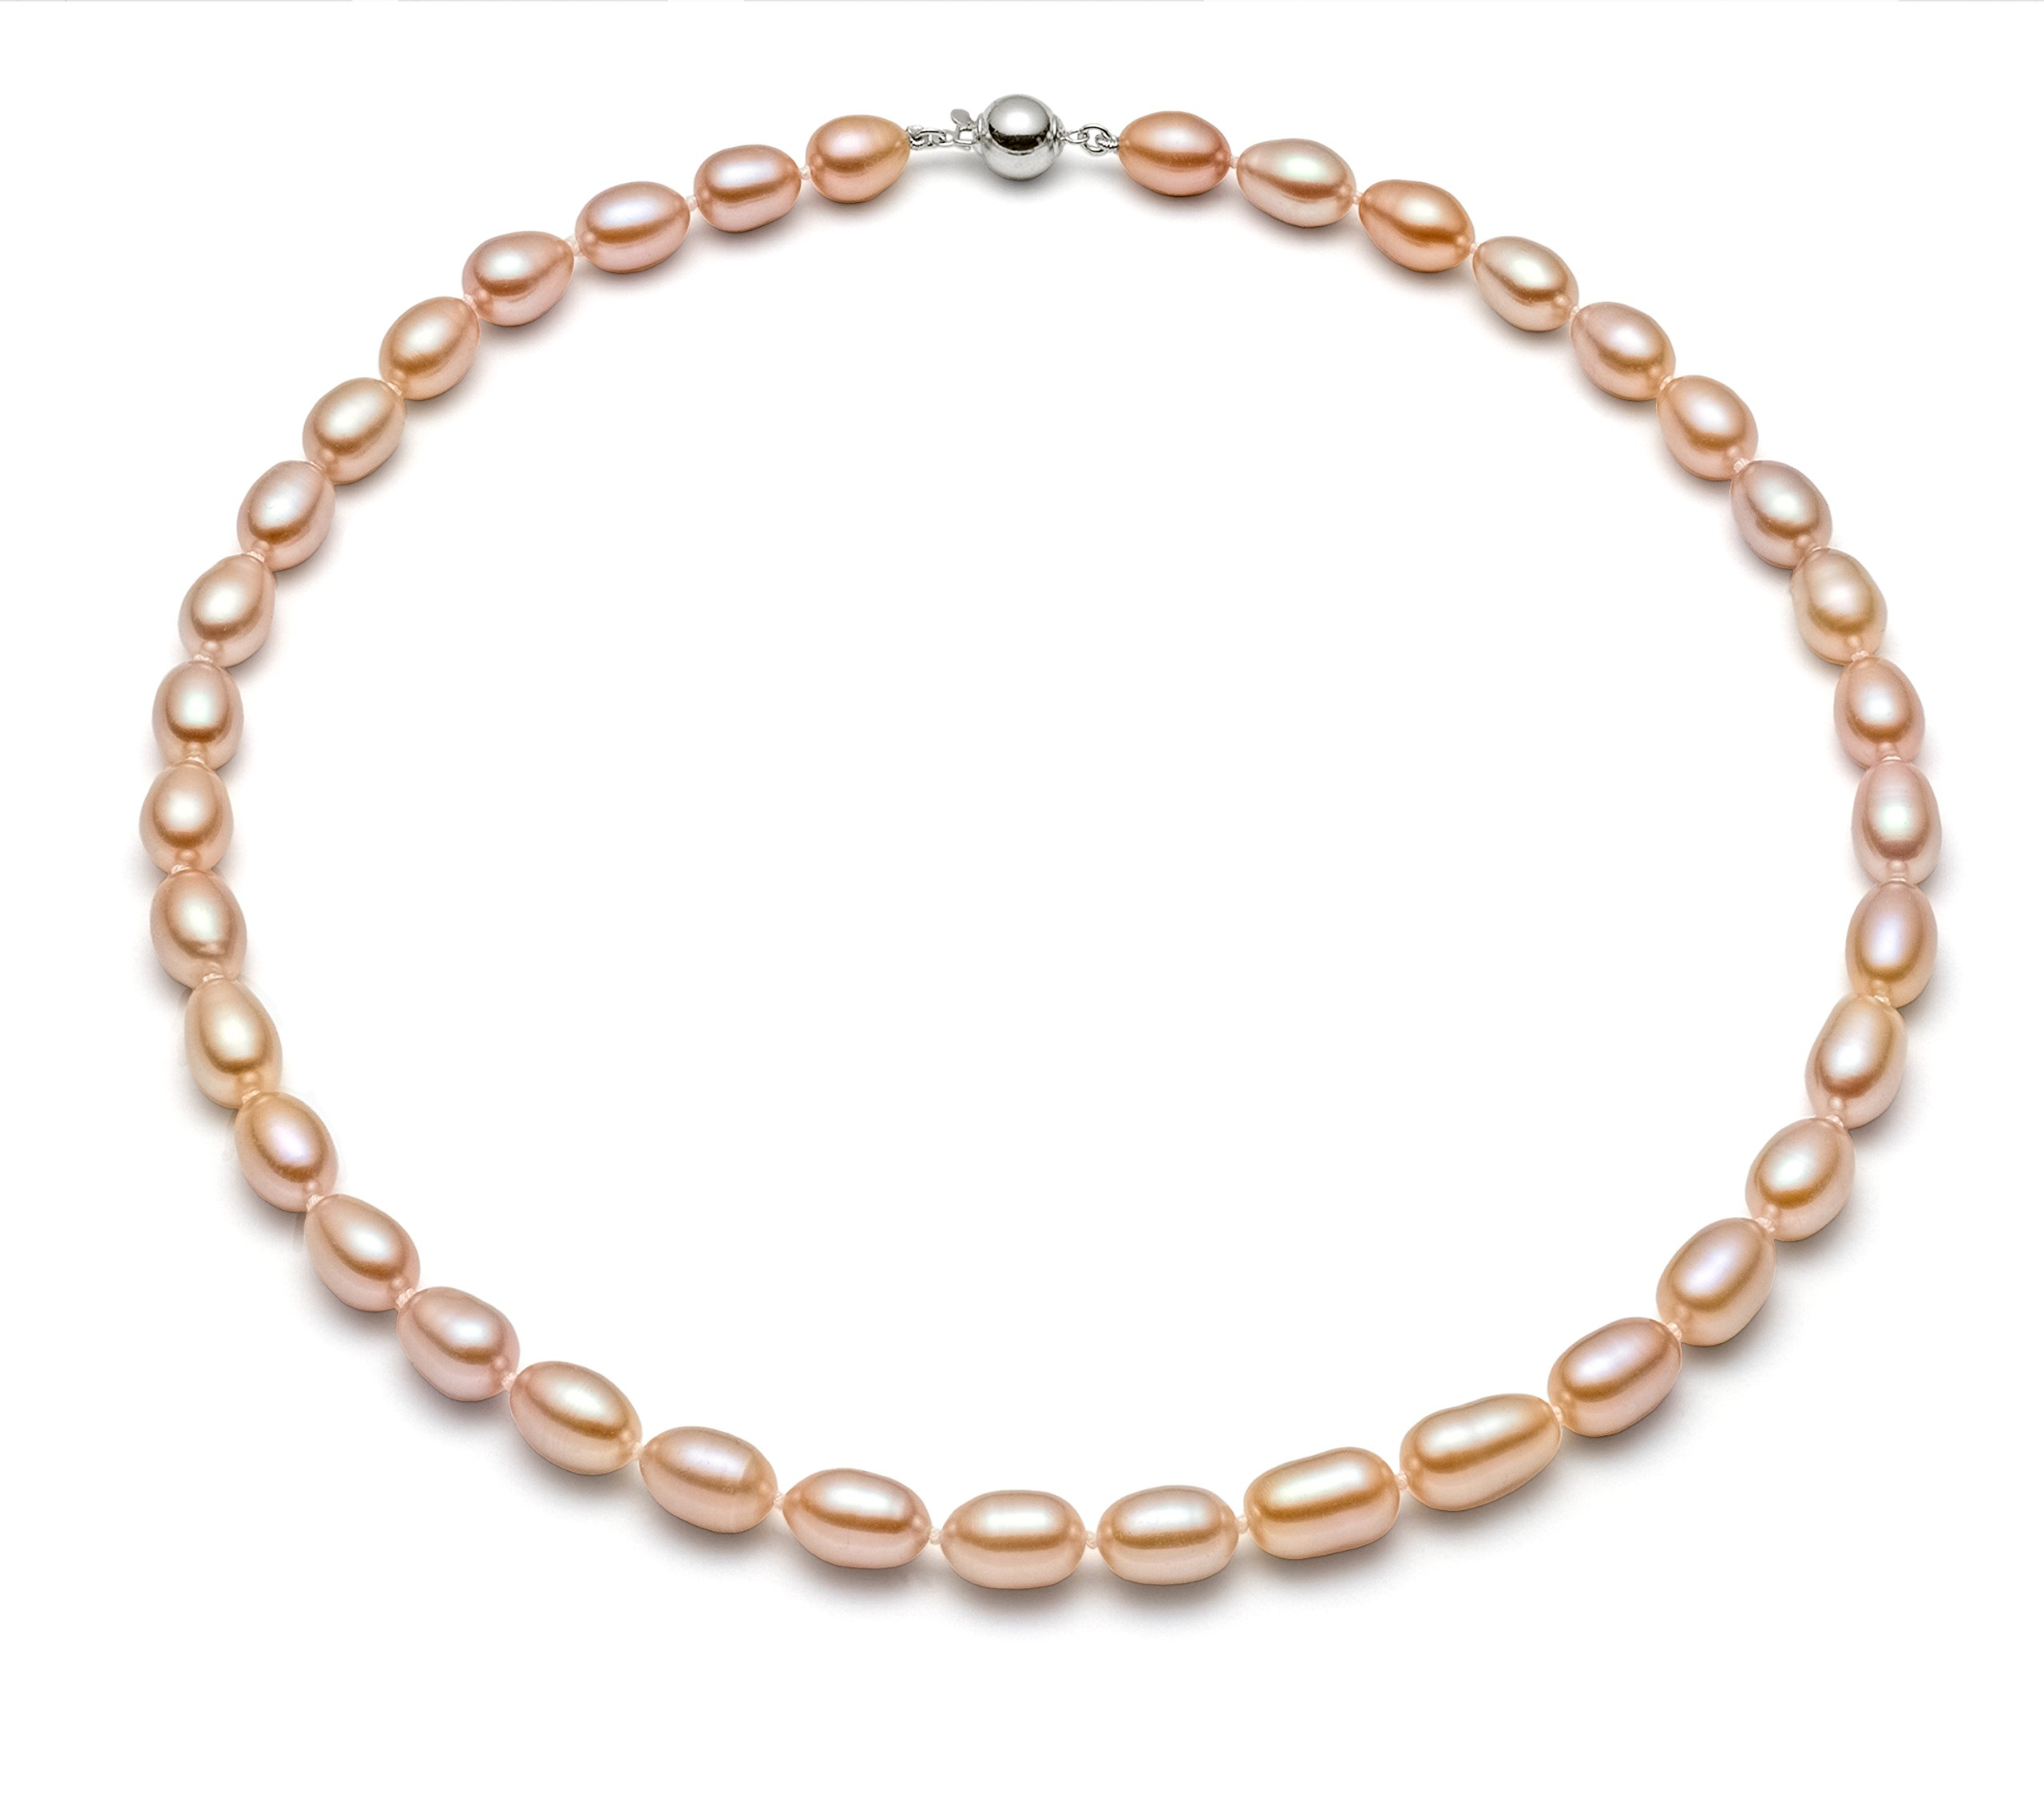 HinsonGayle AAA Handpicked 8-8.5mm Pink Oval Freshwater Cultured Pearl Necklace Silver 18 inch-18 in length